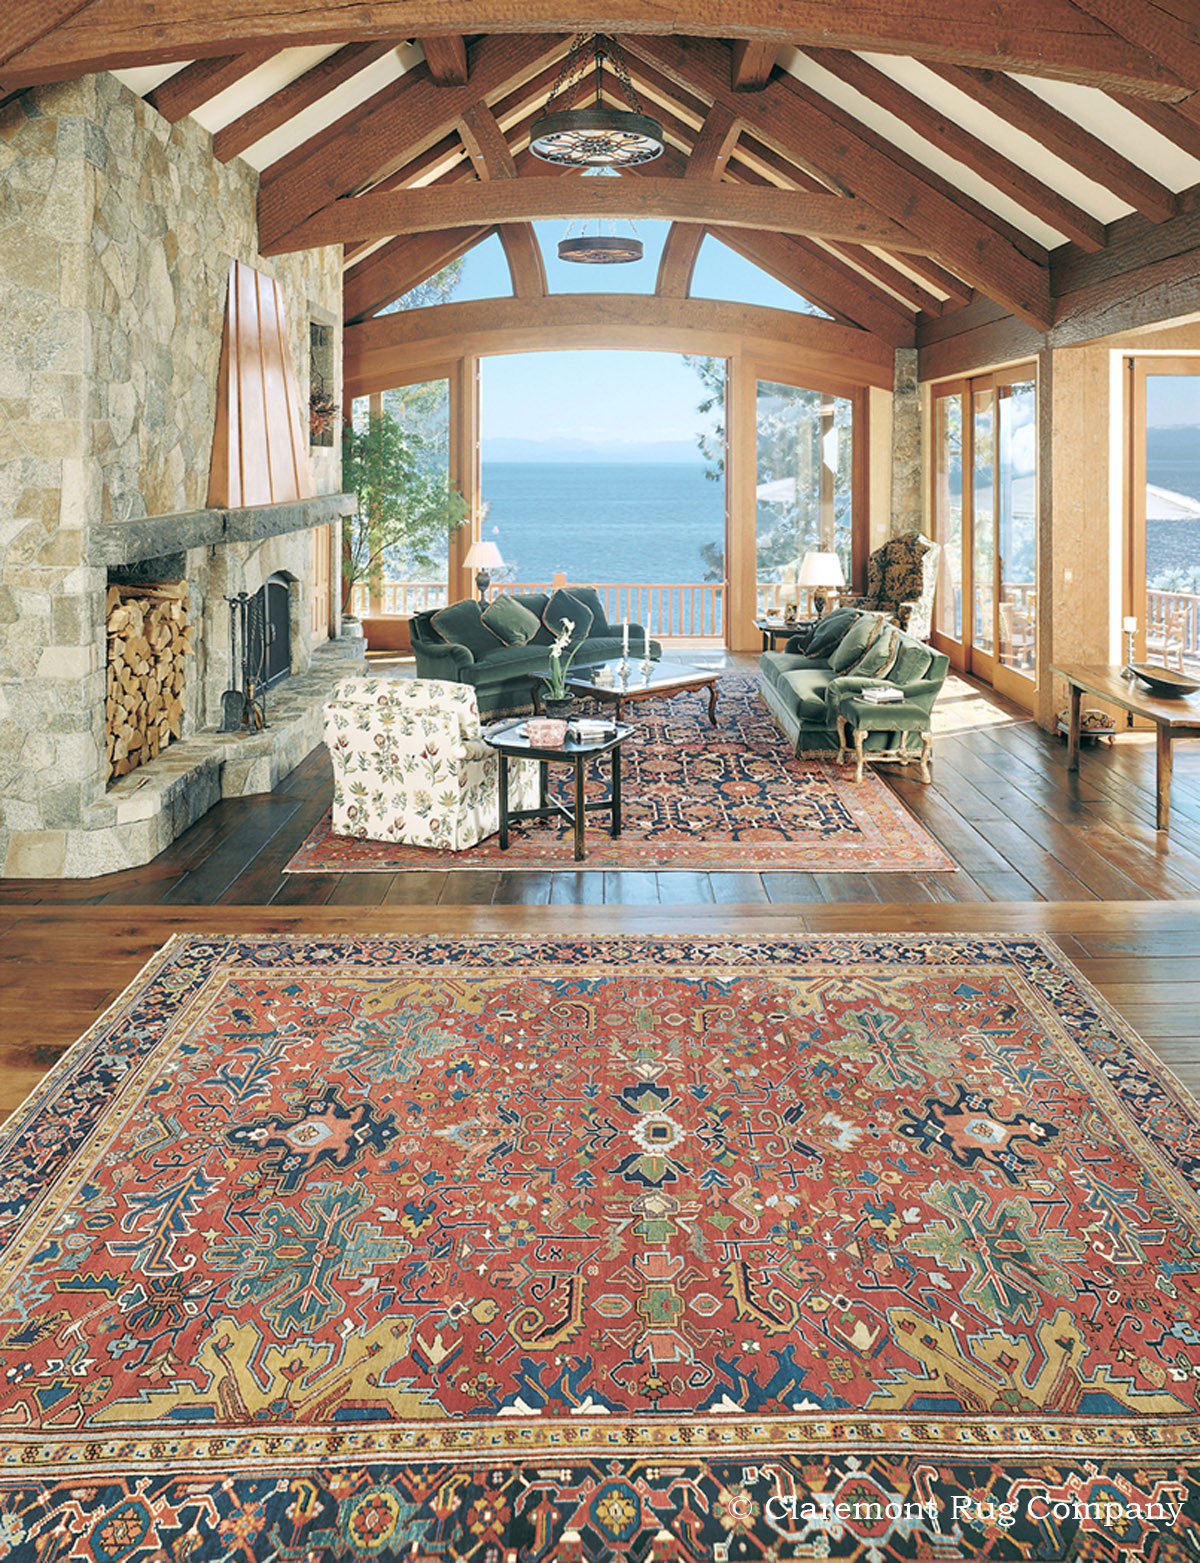 In this gracious lakeside family compound, two unique village carpets, a 19th century Serapi (foreground) and a 19th century Malayer (background) bring a sense of unity and warmth to the broad vistas that can be seen from this high-ceiling room.